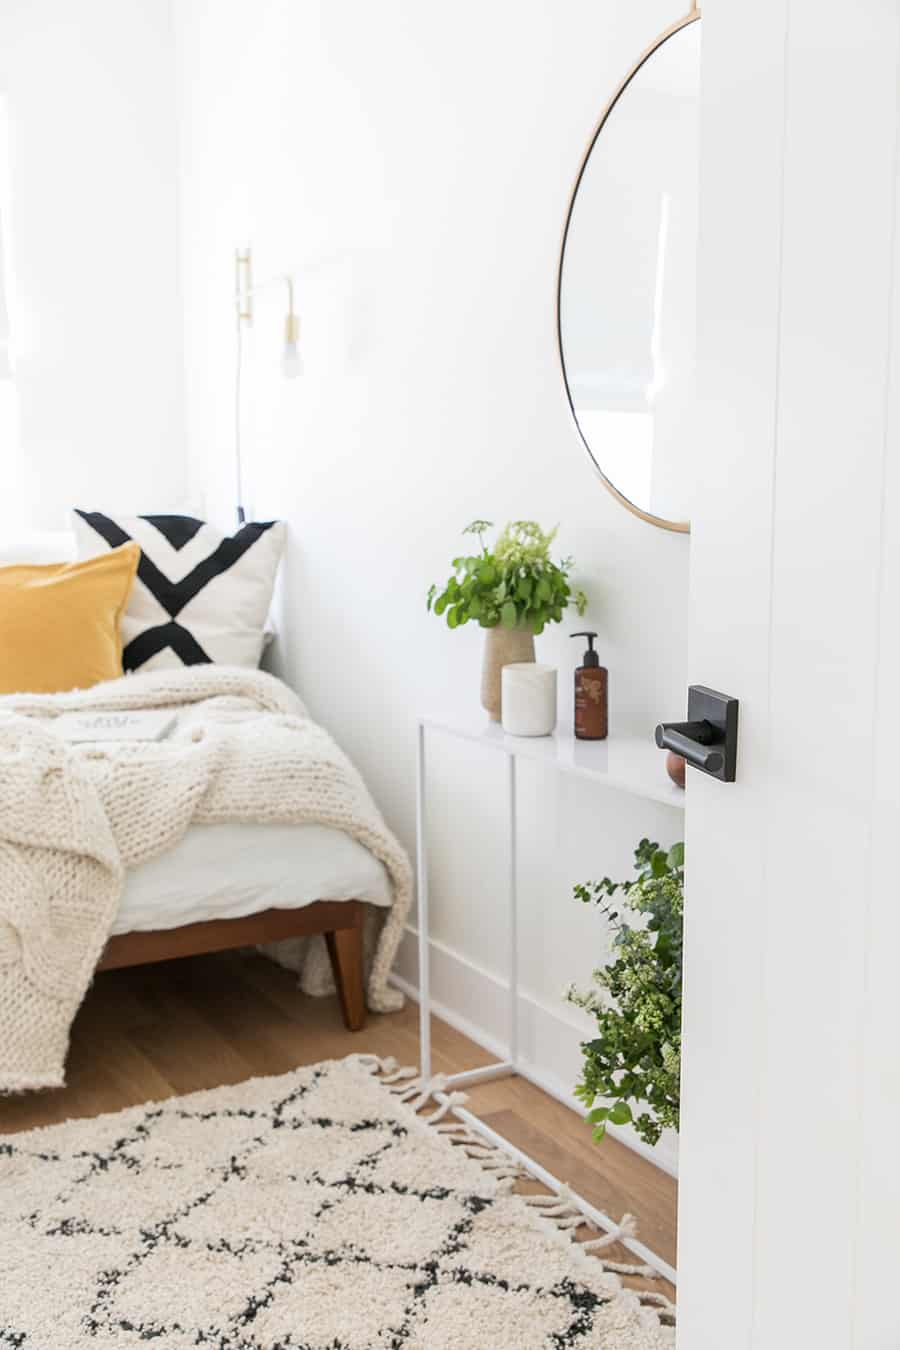 Door open to a guest bedroom with a bed, mirror and pillows.